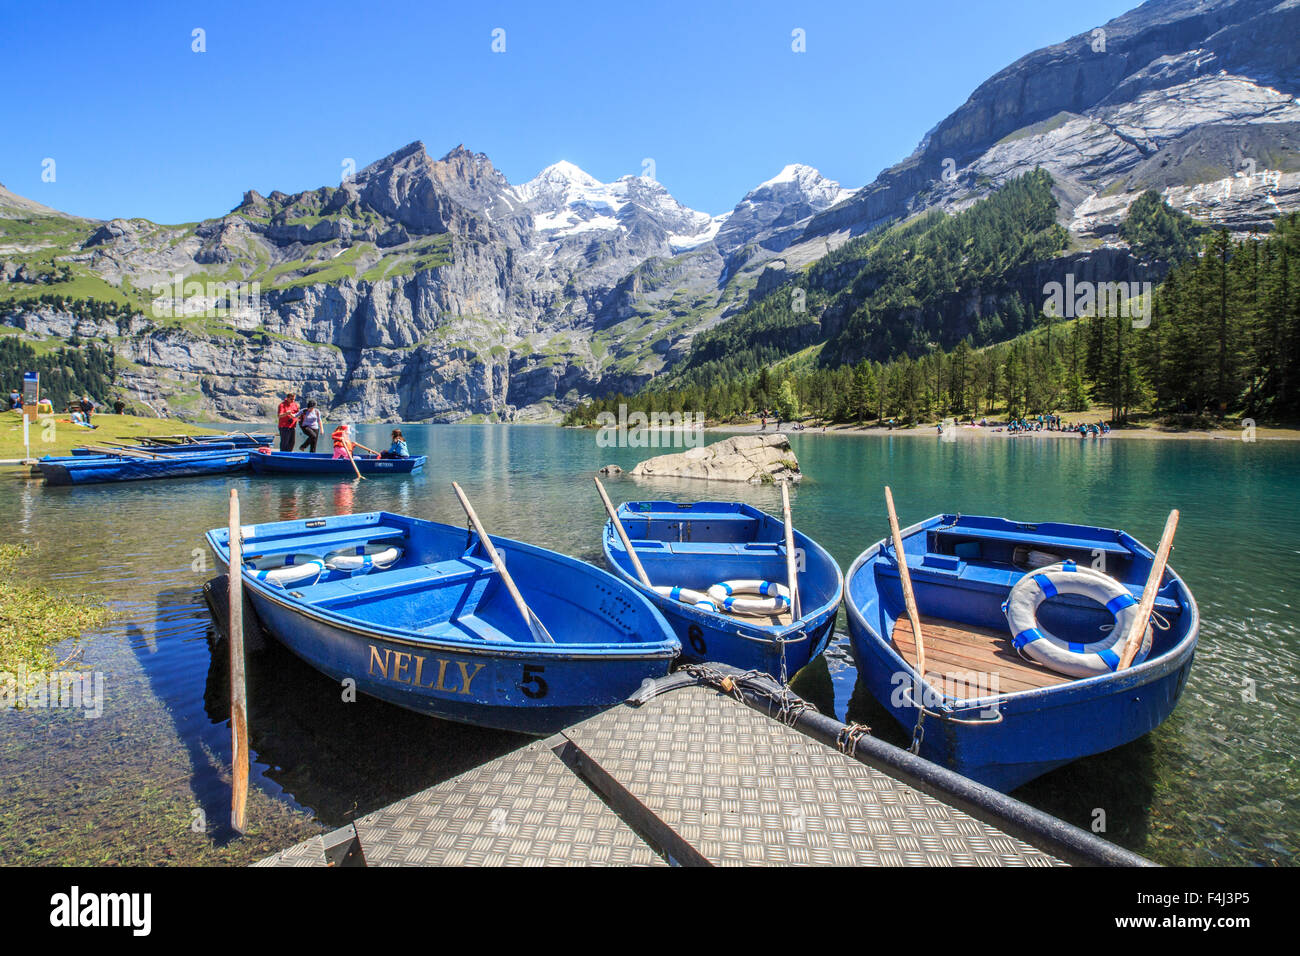 Boat trip around Lake Oeschinensee, Bernese Oberland, Kandersteg, Canton of Bern, Switzerland, Europe - Stock Image